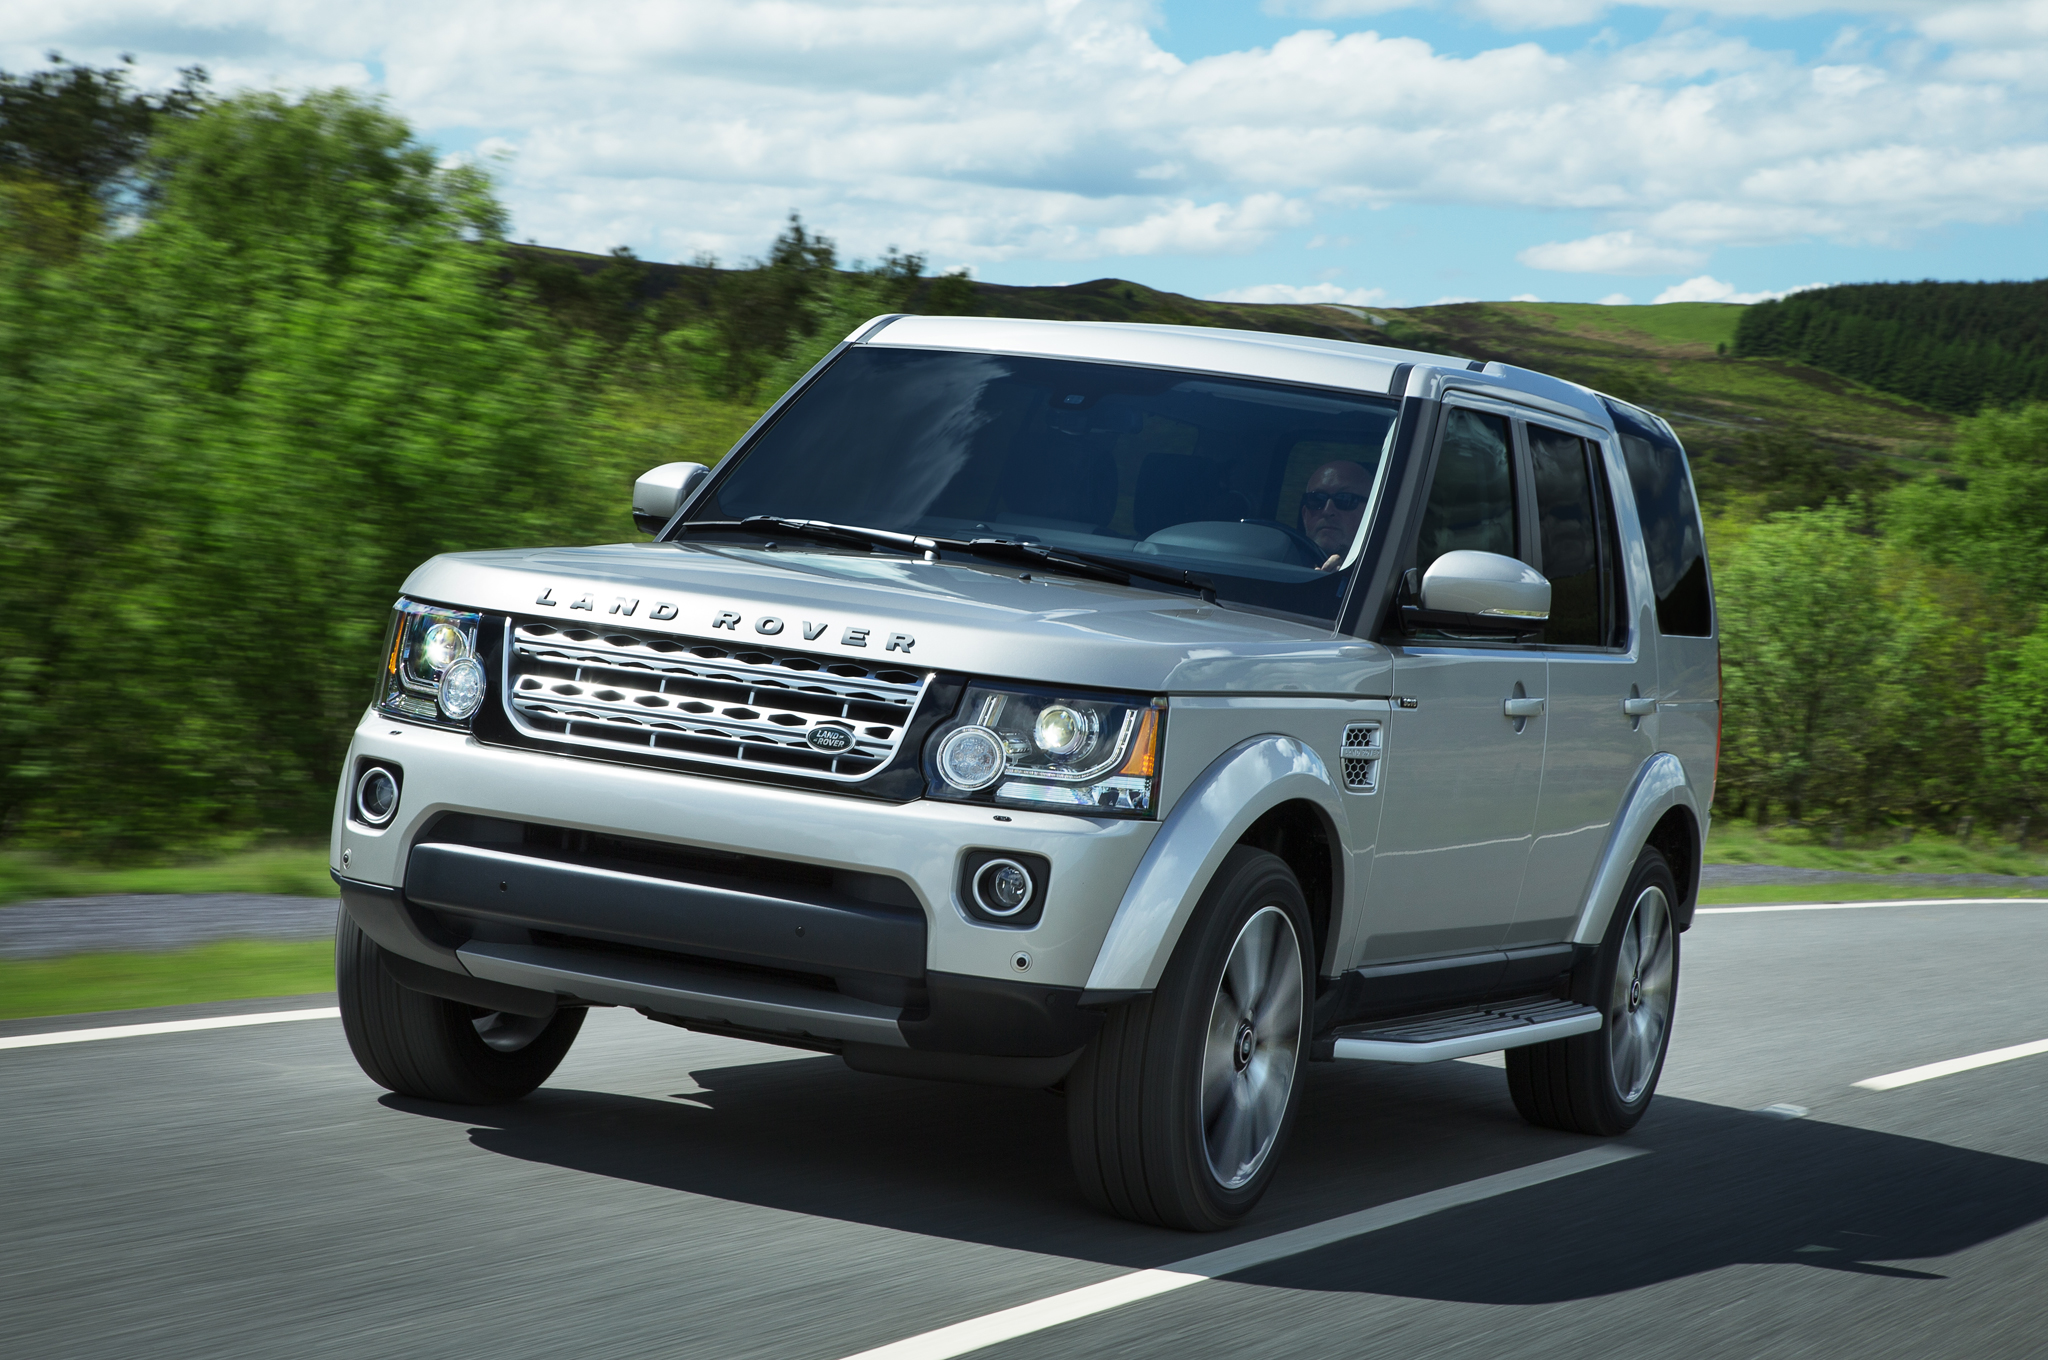 Land Rover Range Rover Iii 2015 Images Auto Database Com